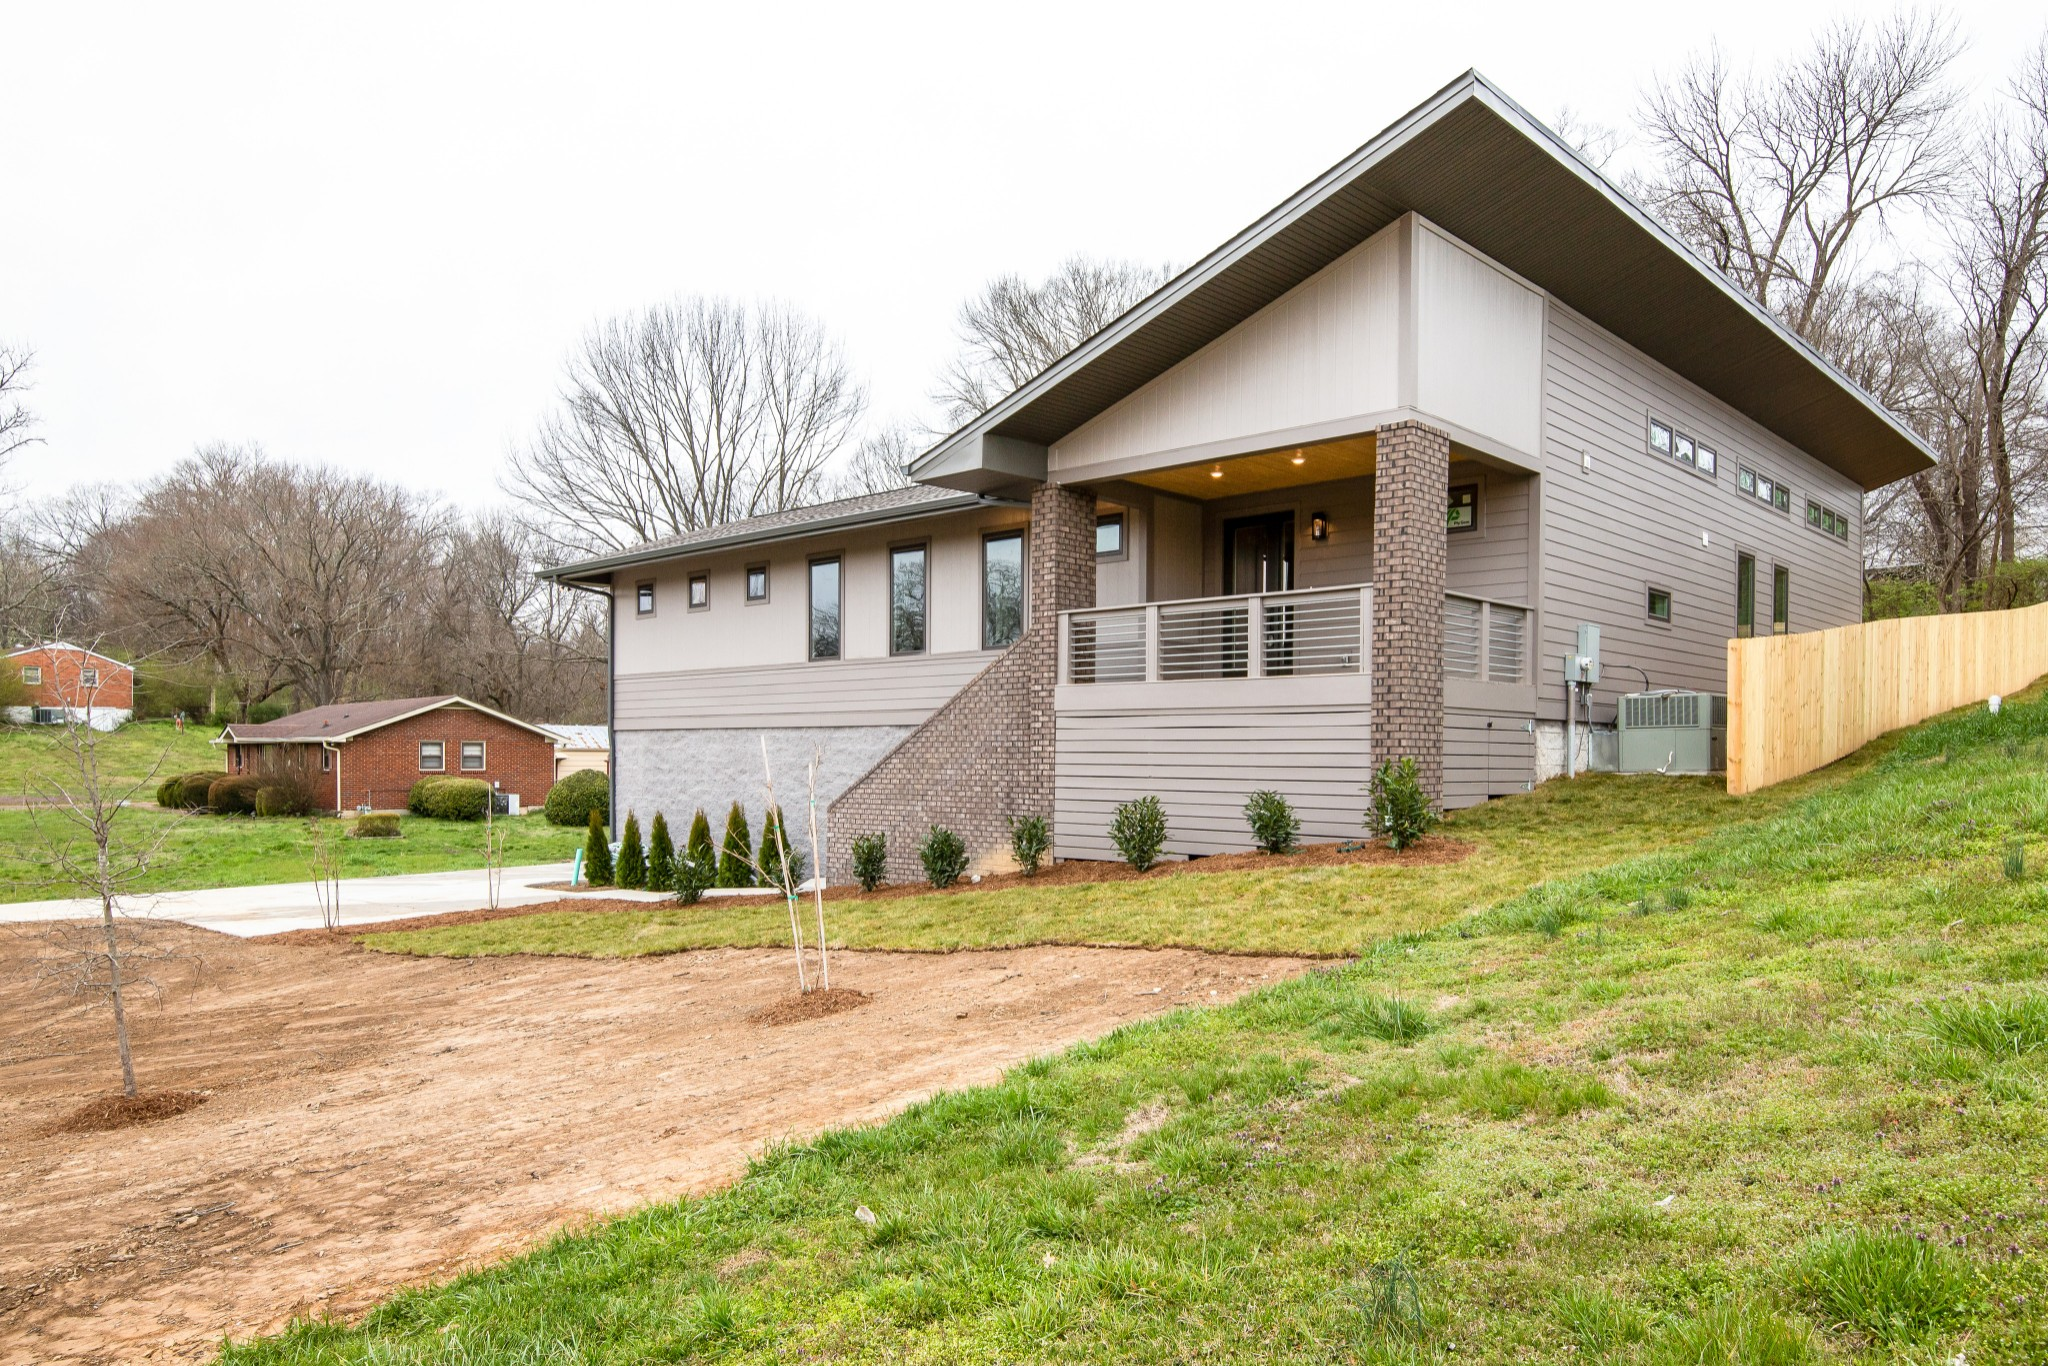 324 Dade Dr, Nashville, TN 37211 - Nashville, TN real estate listing